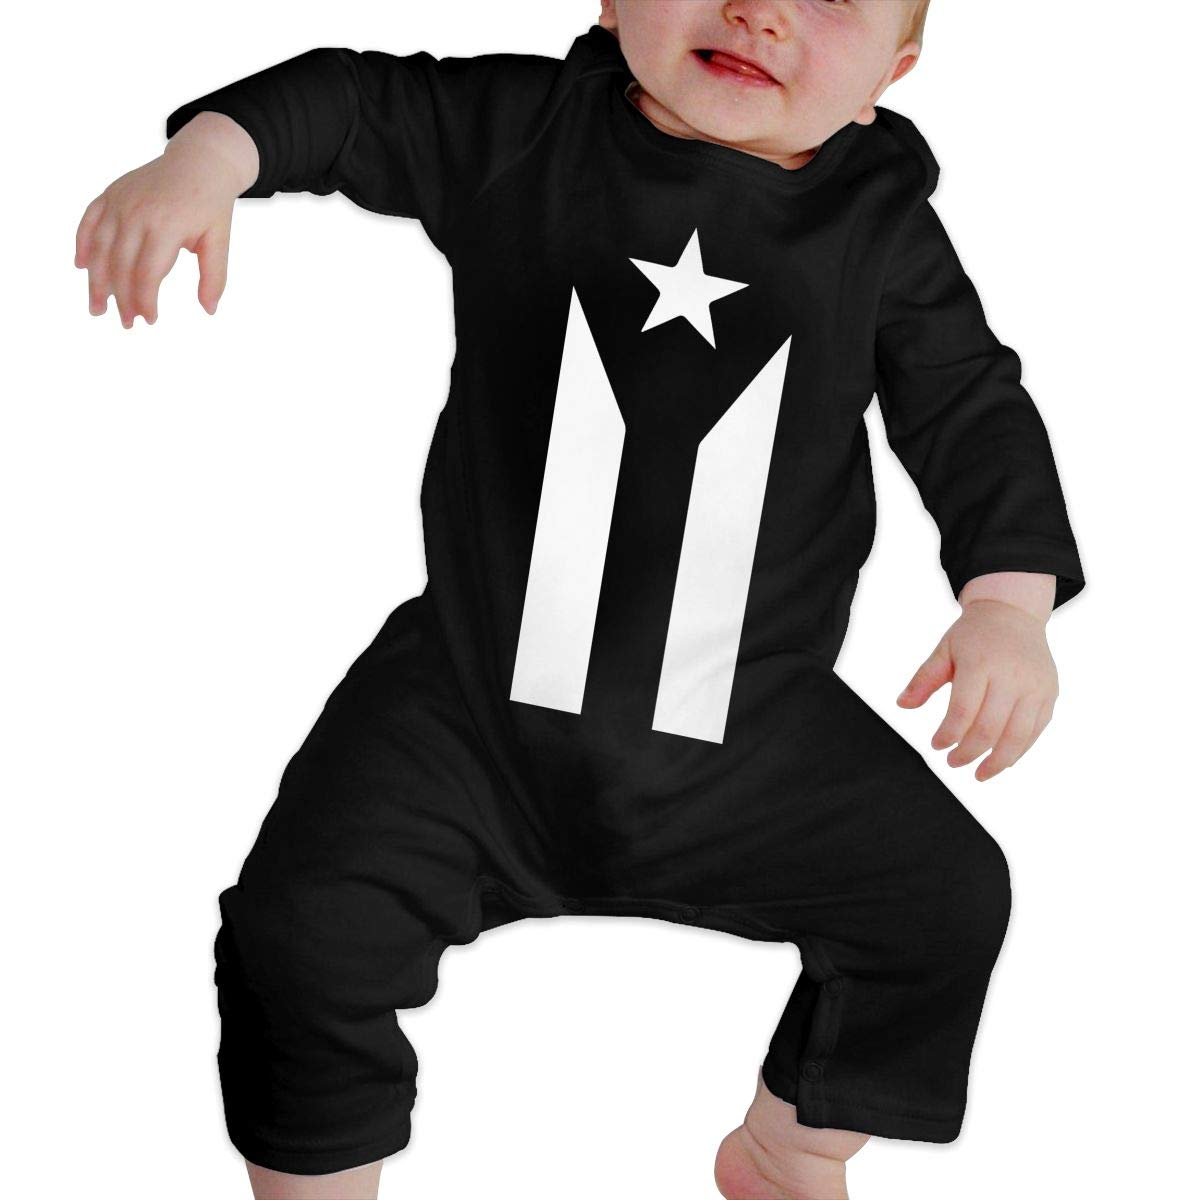 Baby Infant Toddler Cotton Long Sleeve Puerto Rico Black /& White Protest Flag Climb Jumpsuit One-Piece Romper Clothes